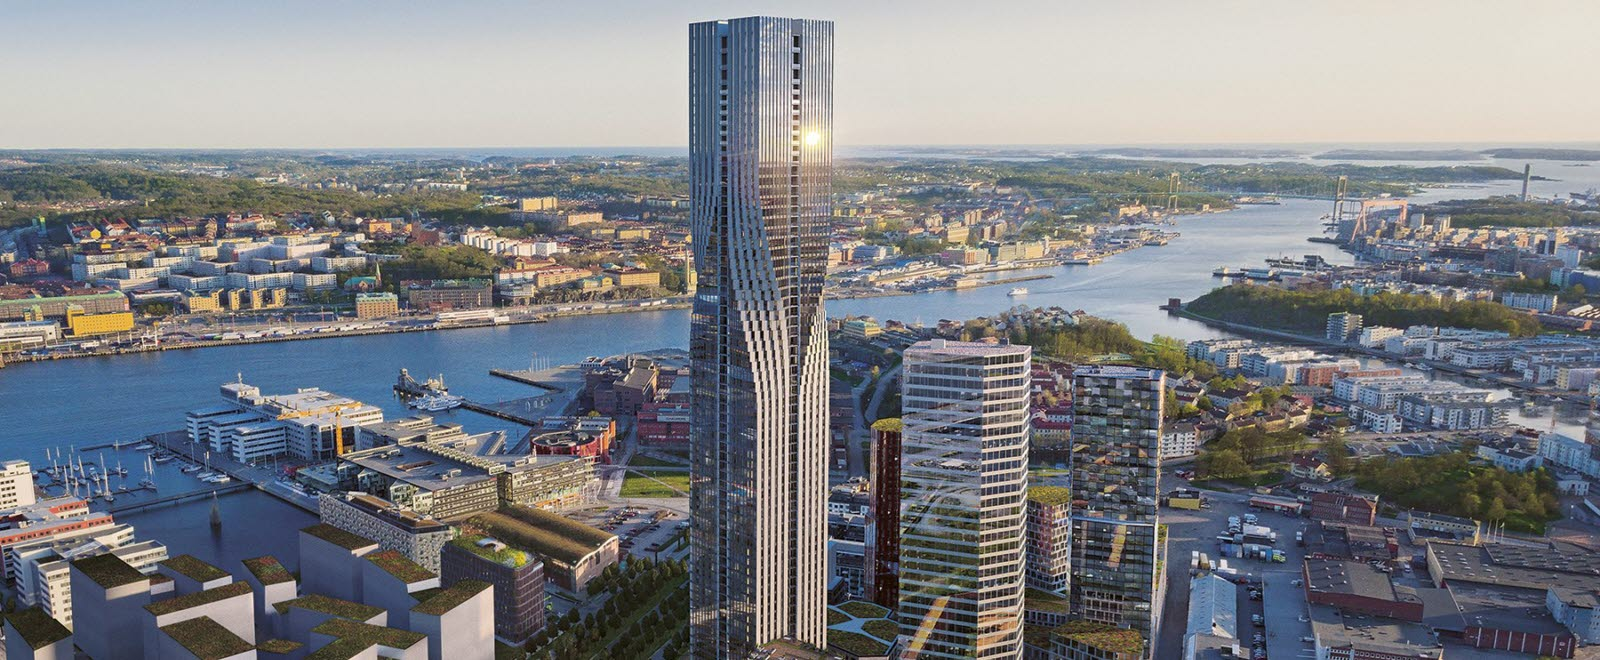 The tallest building in Scandinavia